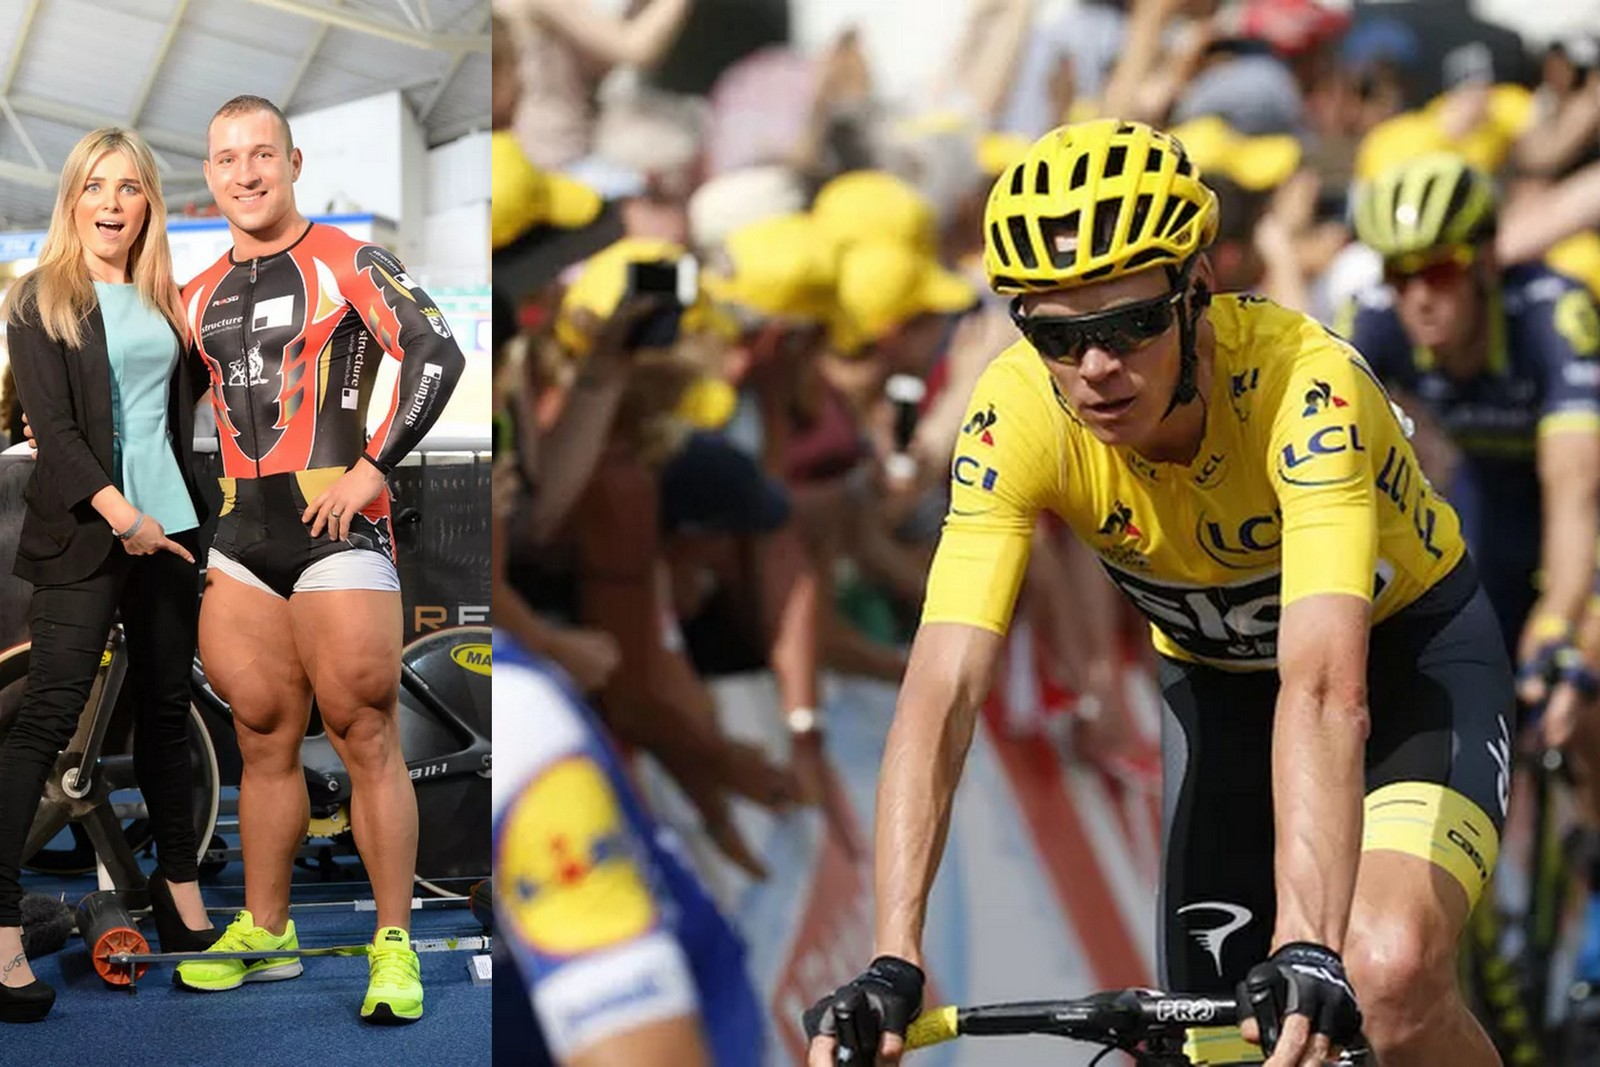 How do cyclists get big legs?' - you asked Google and we've got the